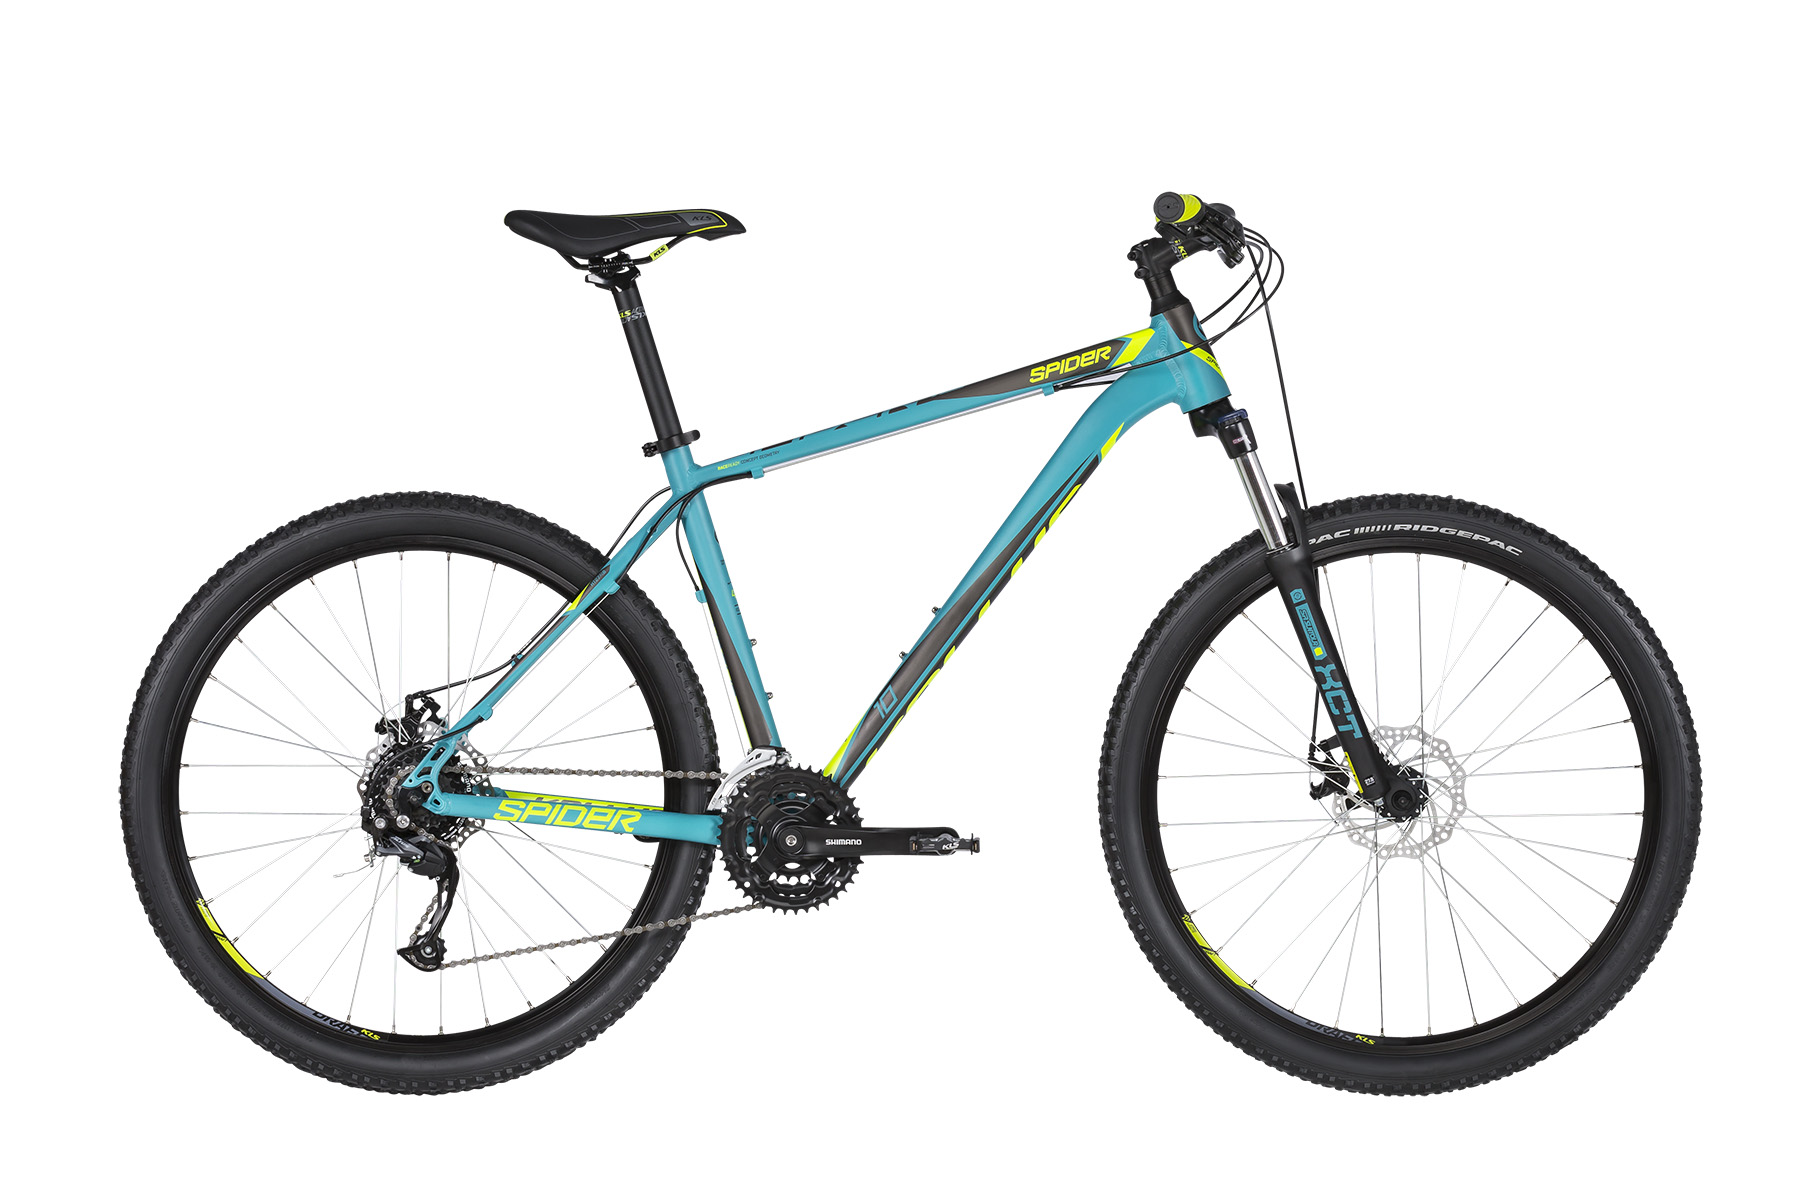 KELLYS Spider 10 Turquoise XS 27.5´´ - KELLYS Spider 10 Turquoise XS 27.5´´